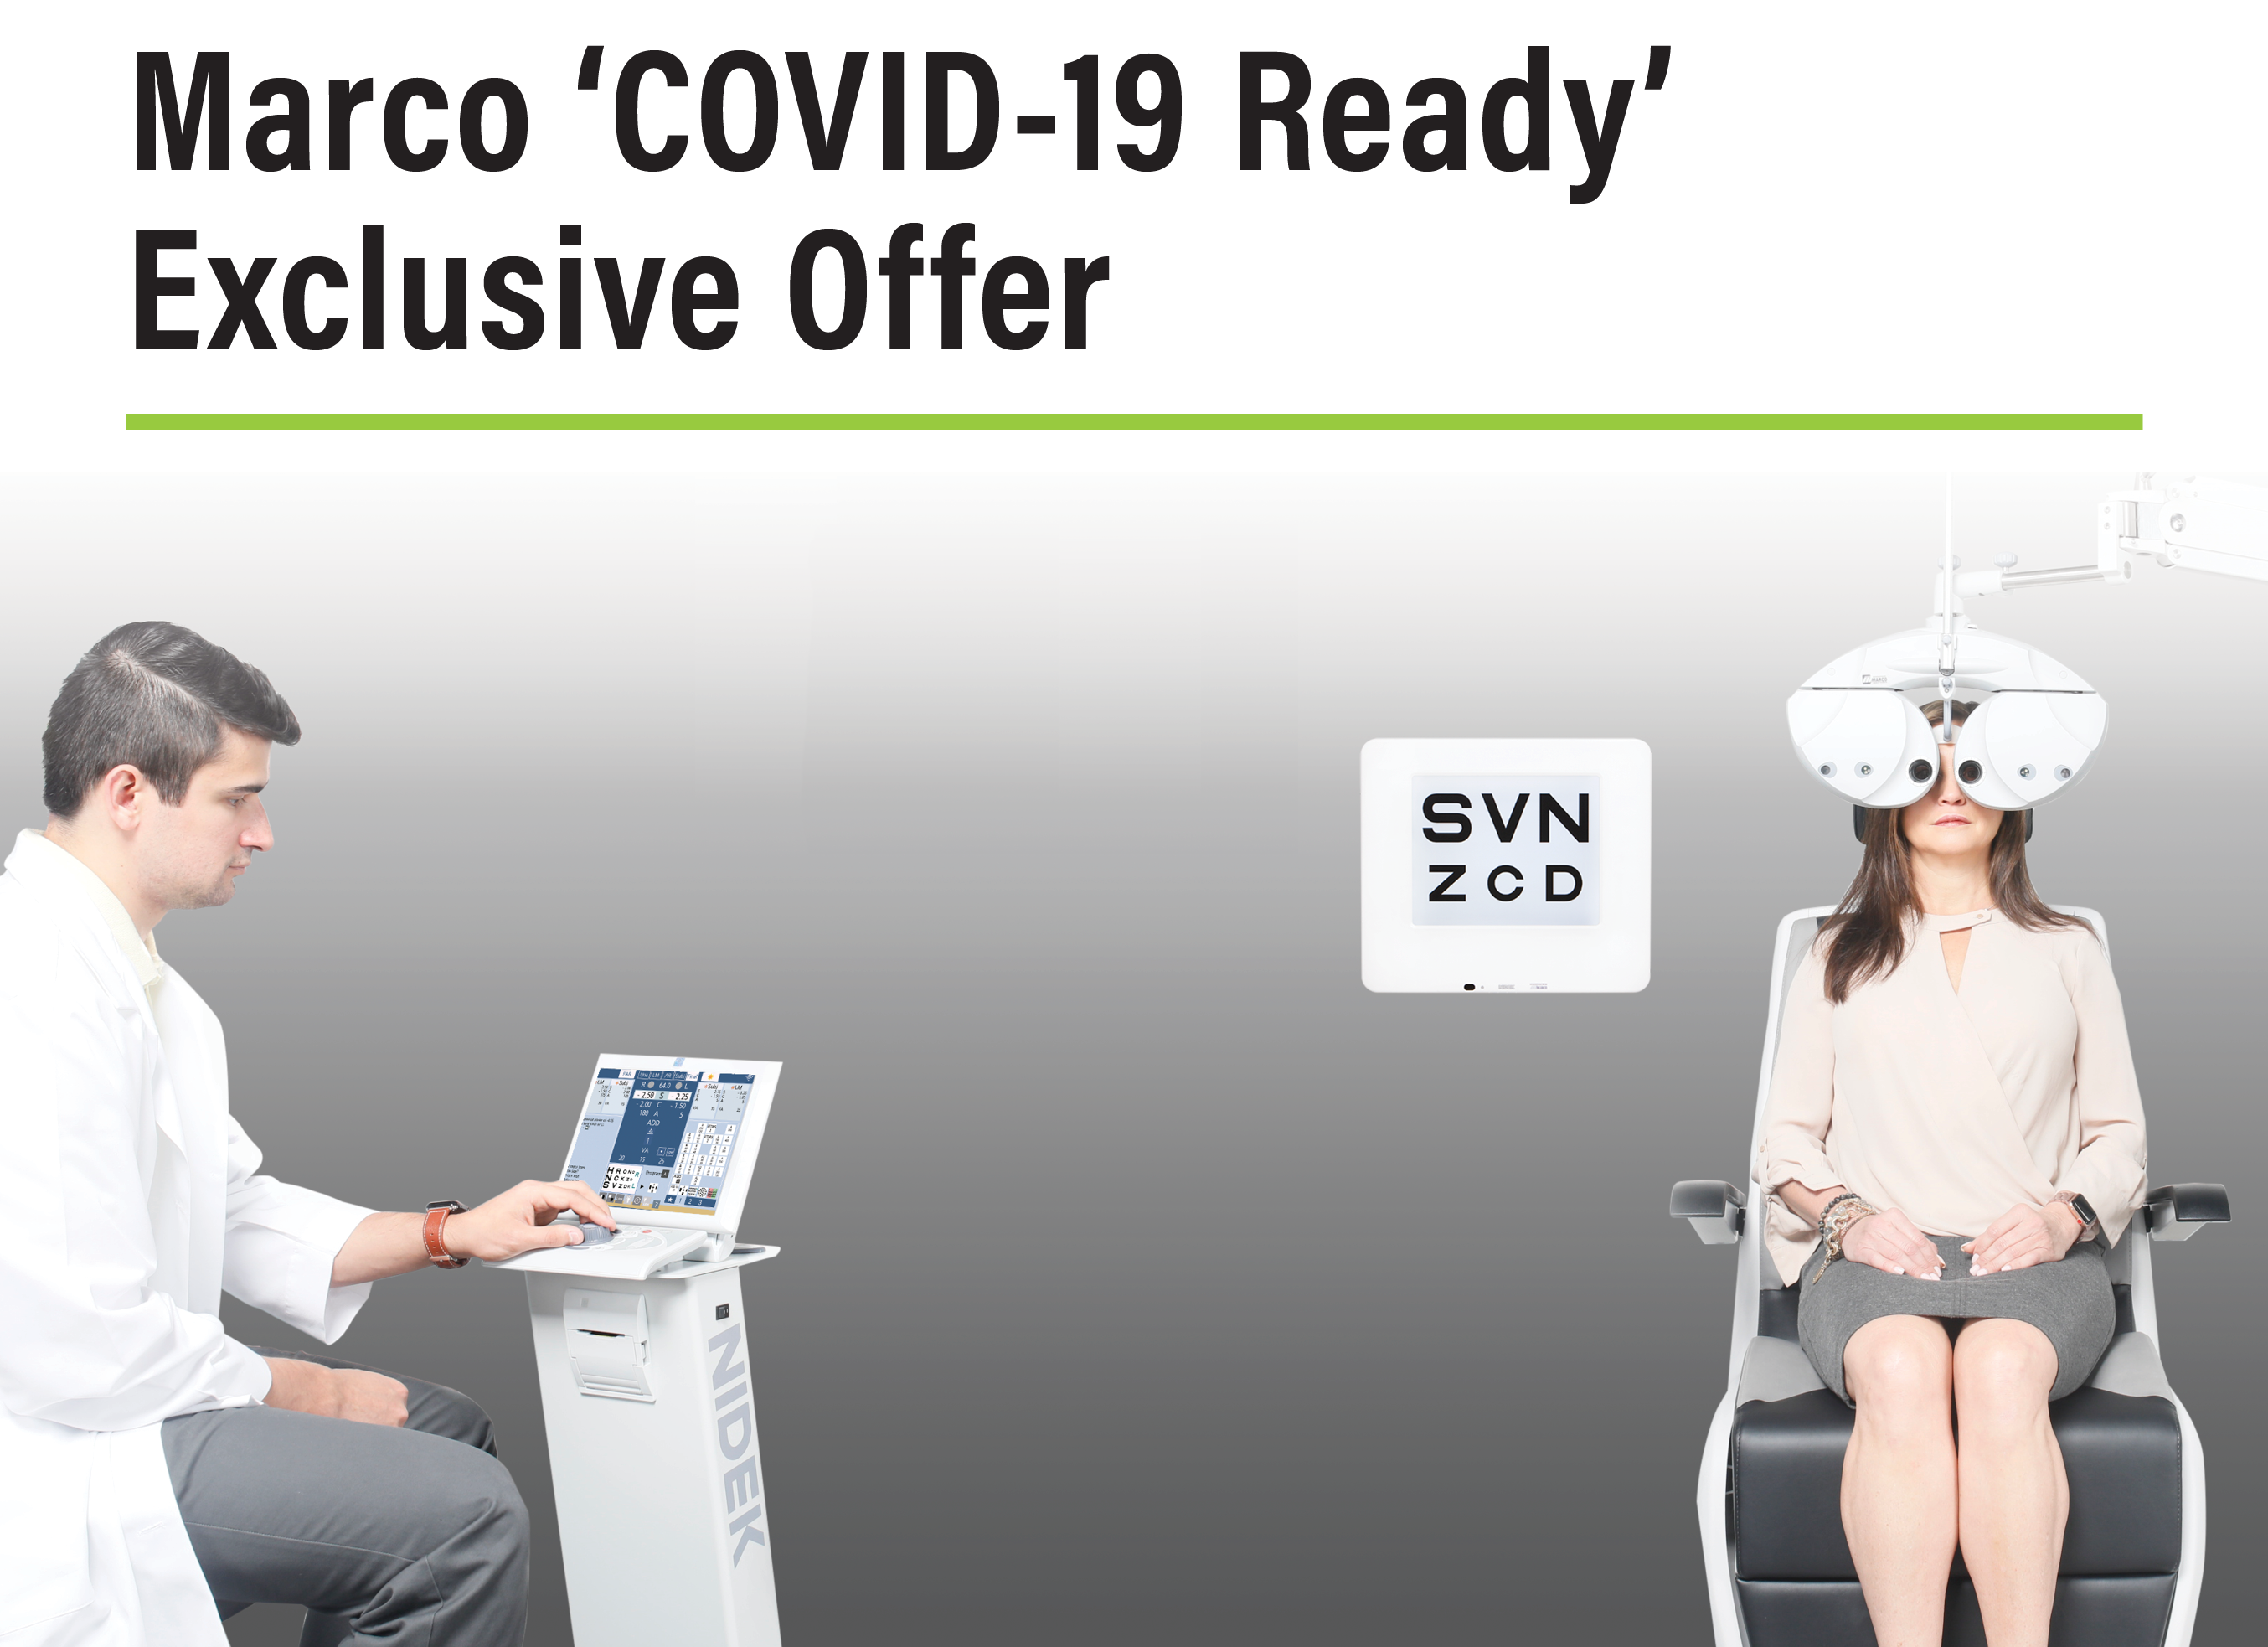 Limited Time 'Back to Practice' COVID-19 Ready Offer